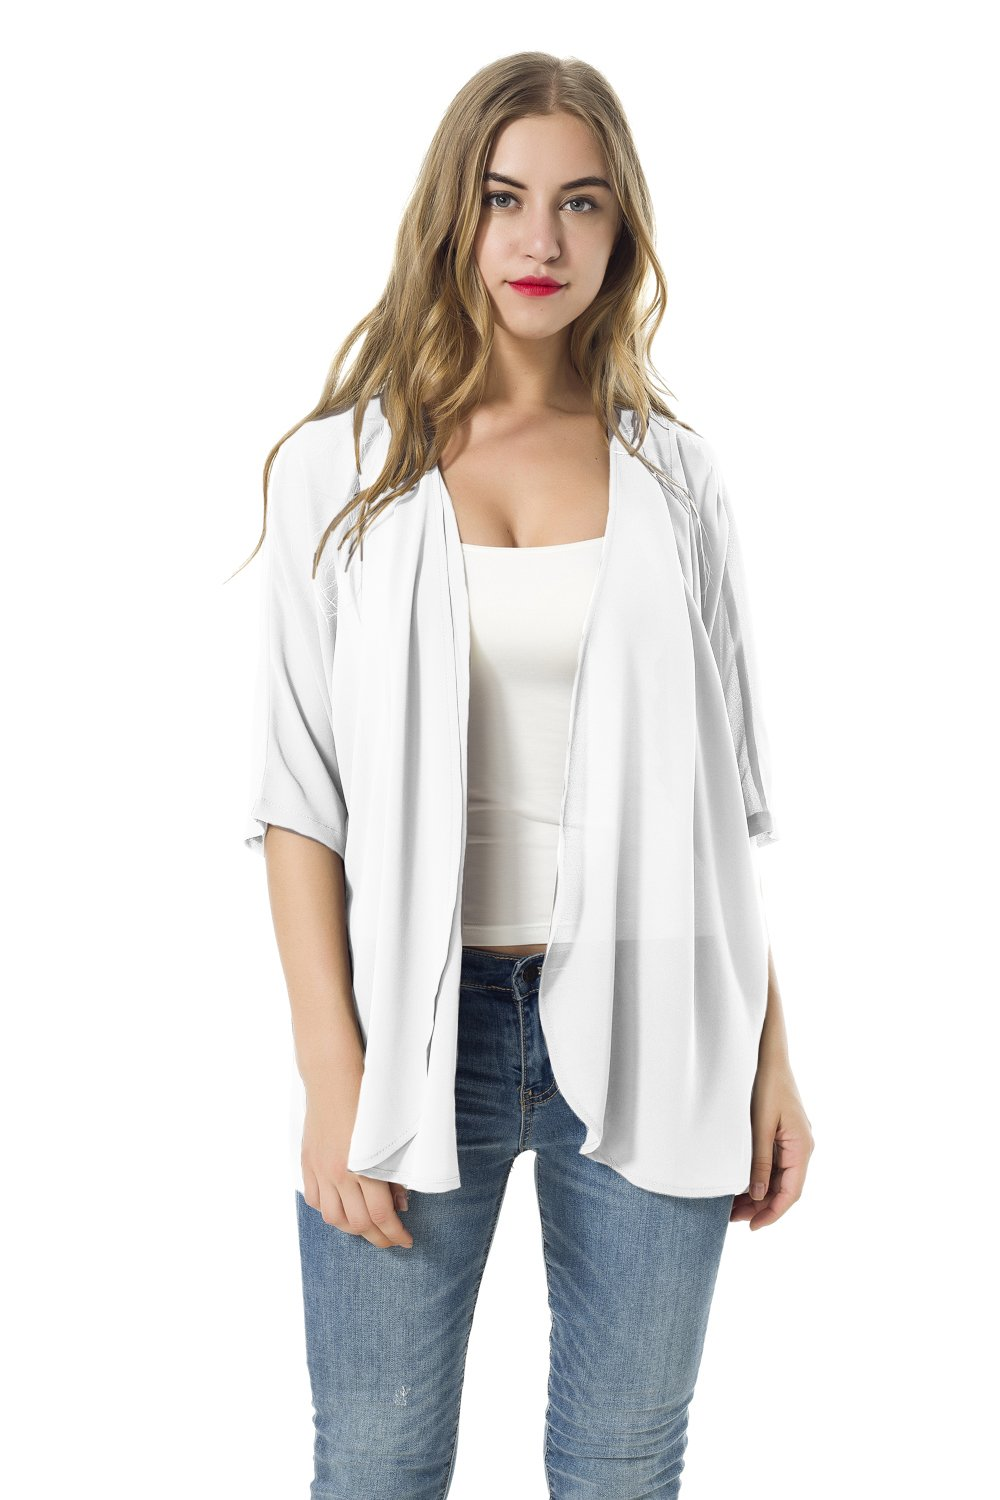 NB Women's Short Sleeve Beachwear Sheer Chiffon Kimono Cardigan Solid Casual Capes Beach Cover up Blouse (L, White)